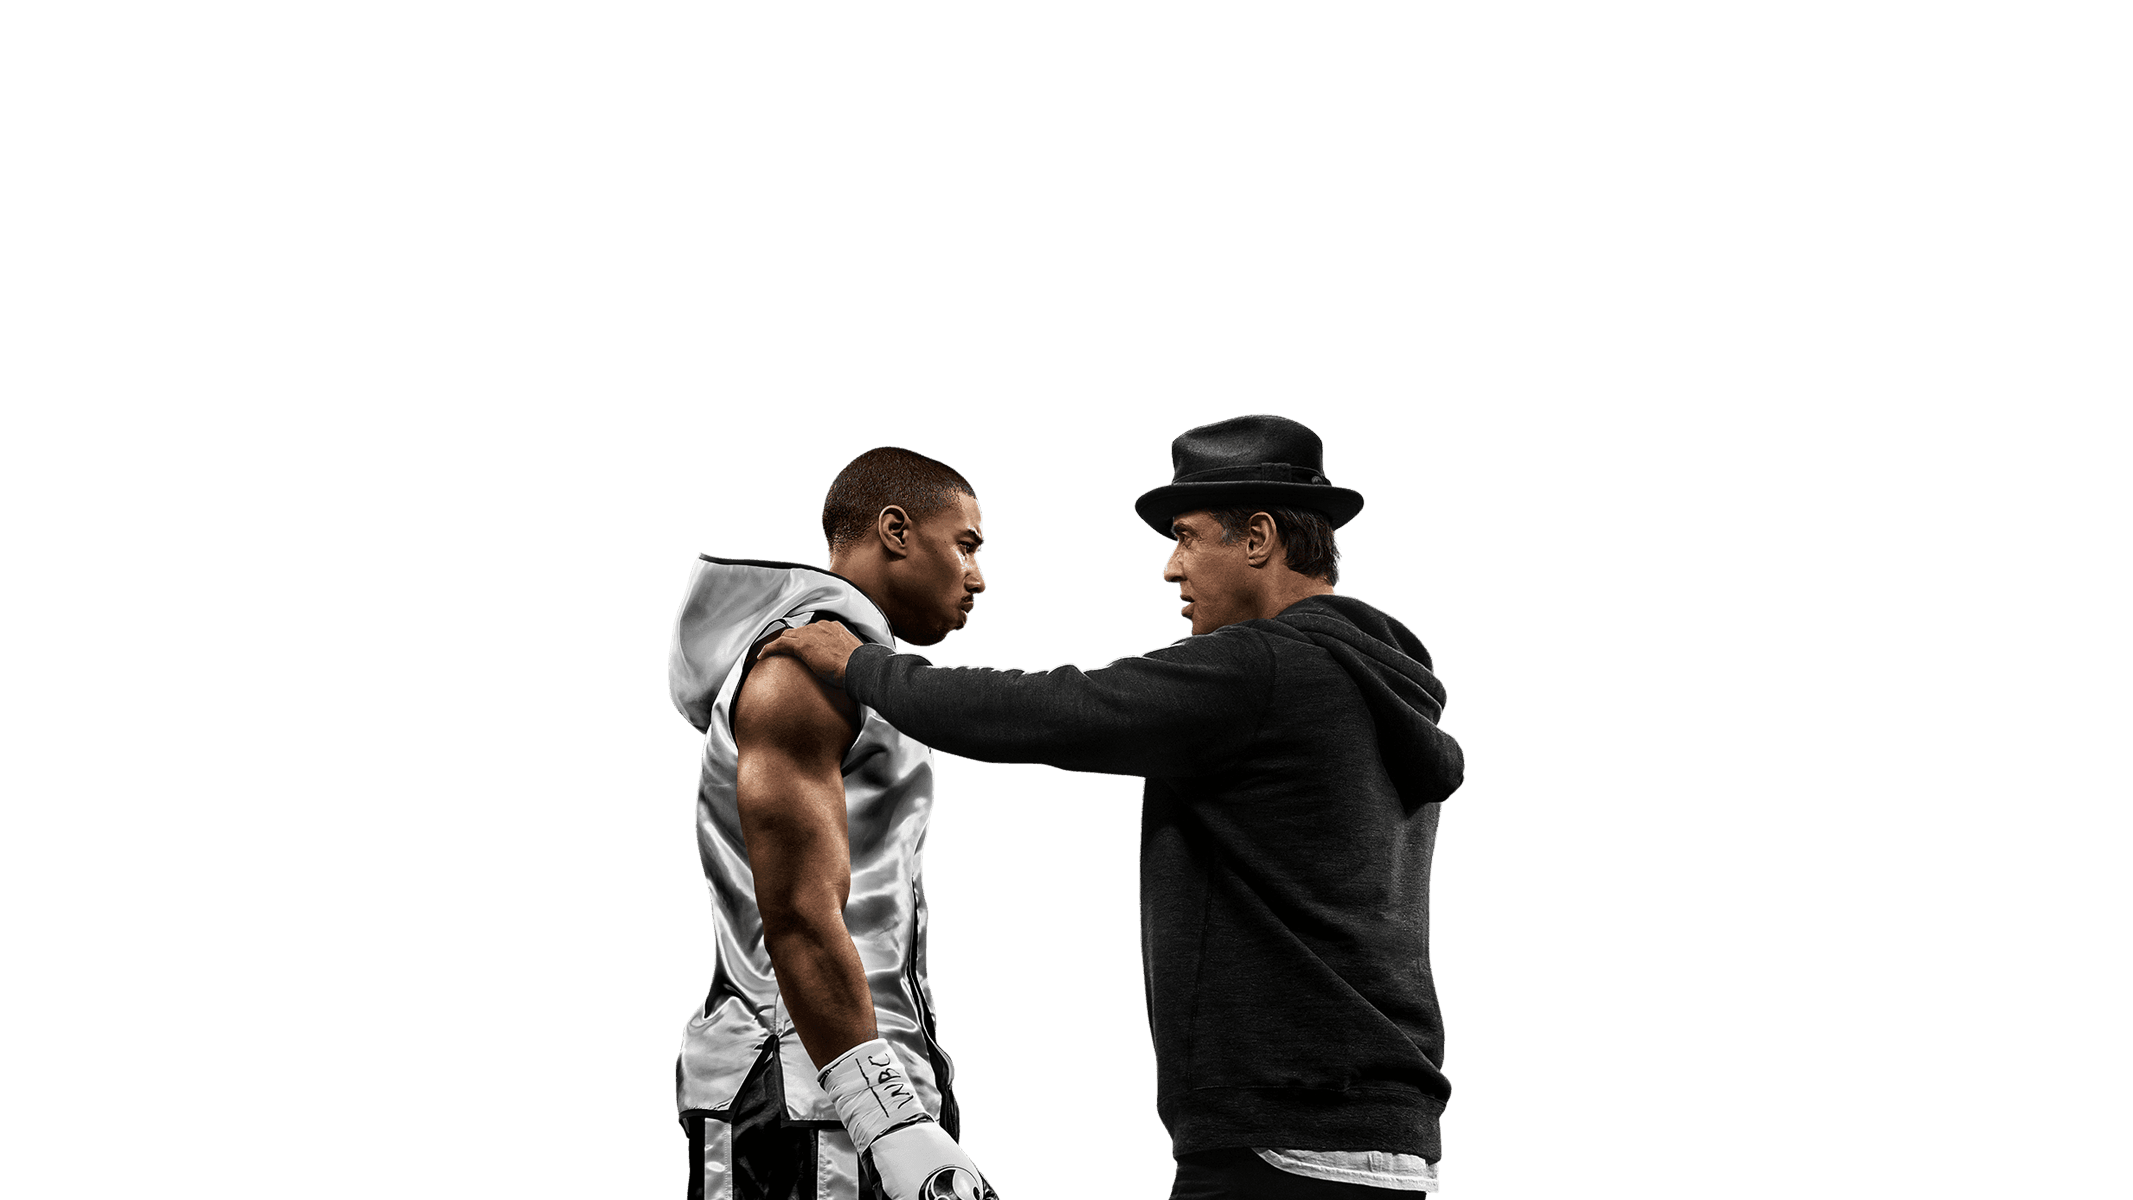 Rocky is orthodox because he believes in Creed.